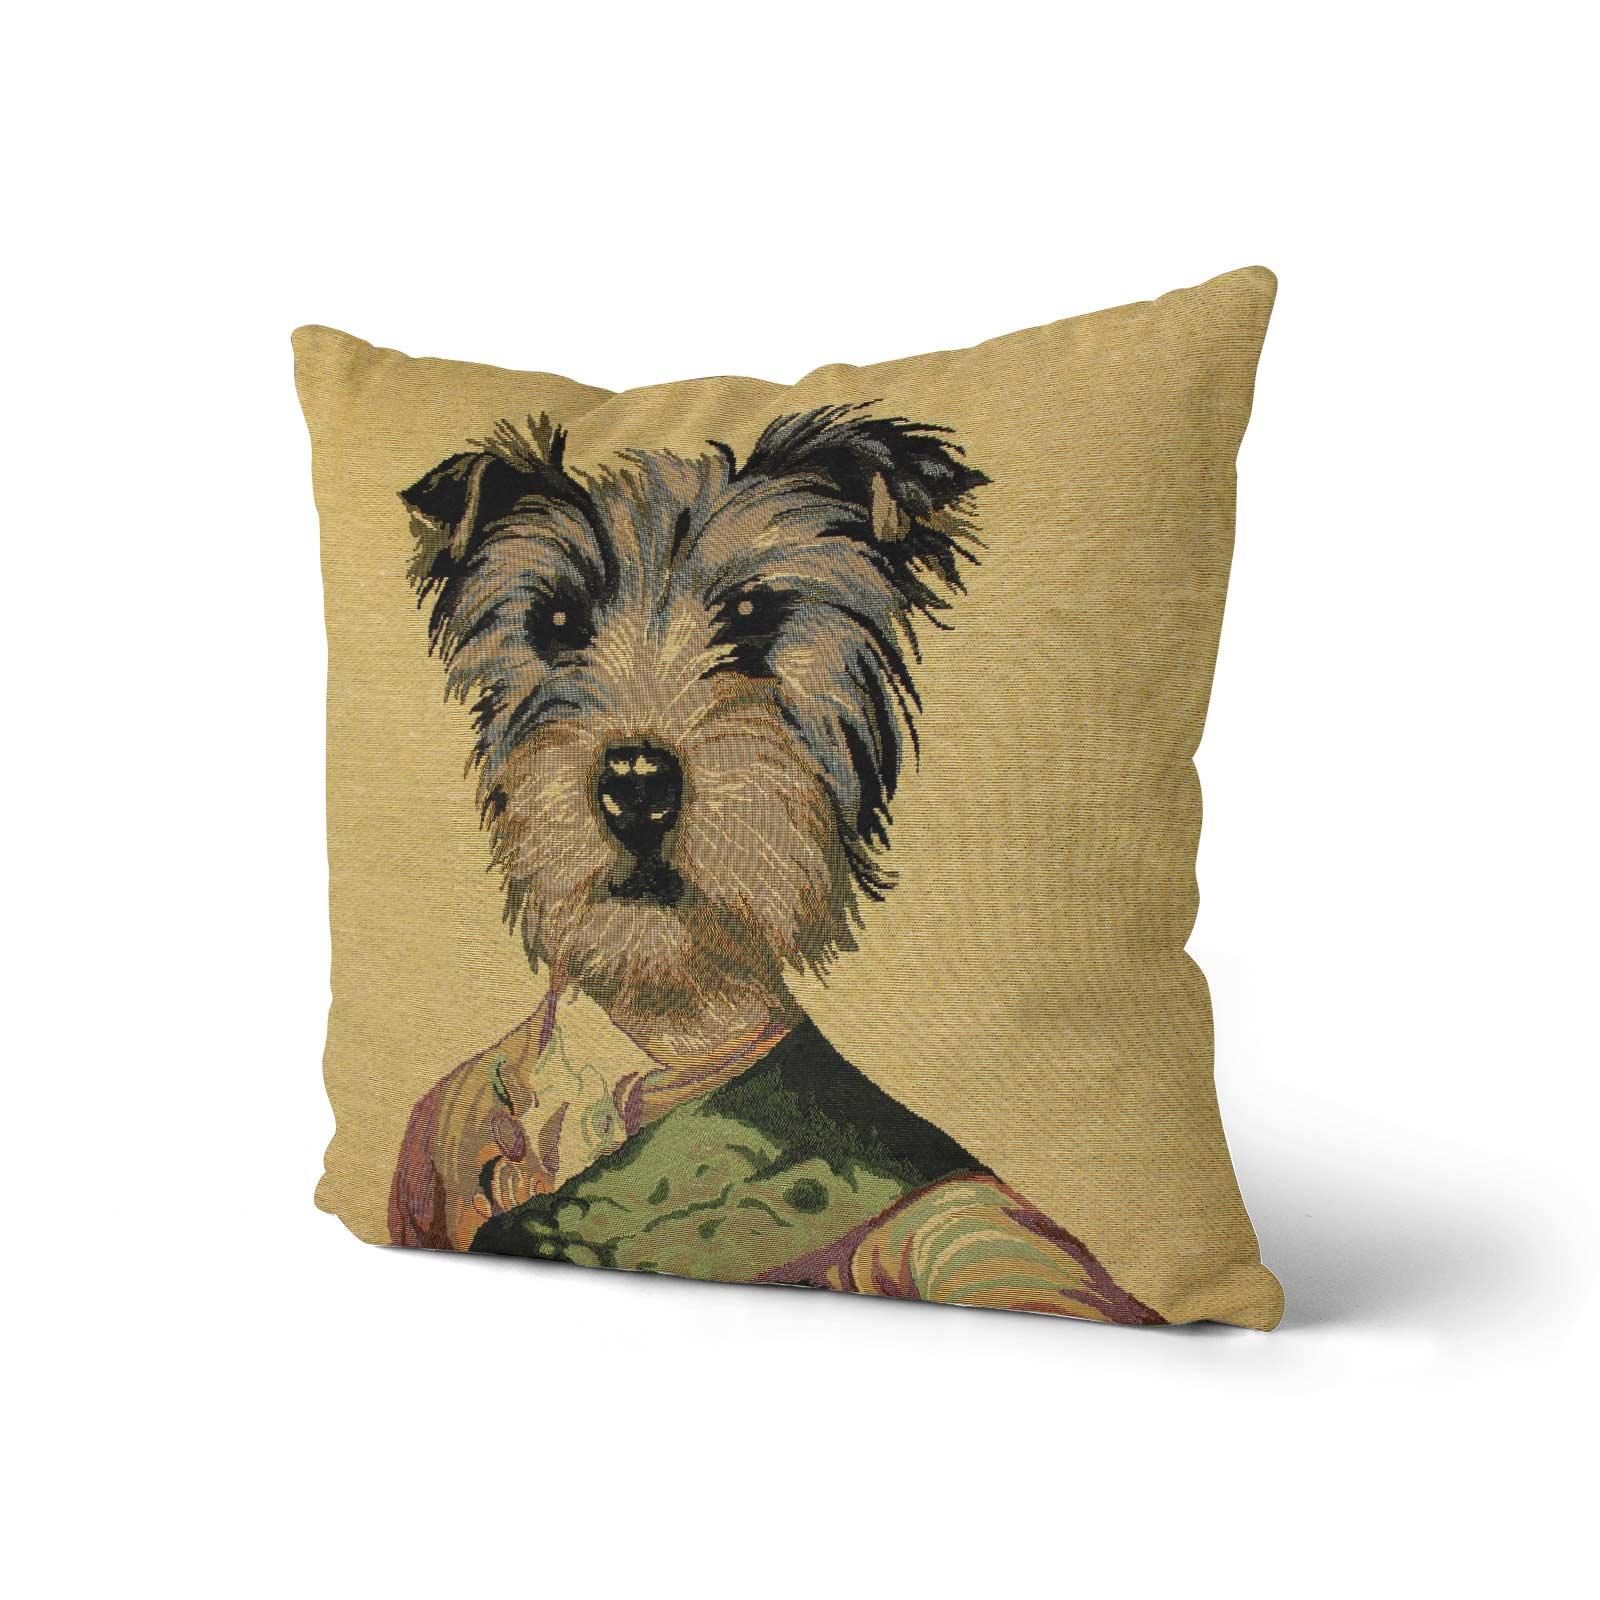 Tapestry-Cushion-Covers-Vintage-Pillow-Cover-Collection-18-034-45cm-Filled-Cushions thumbnail 29